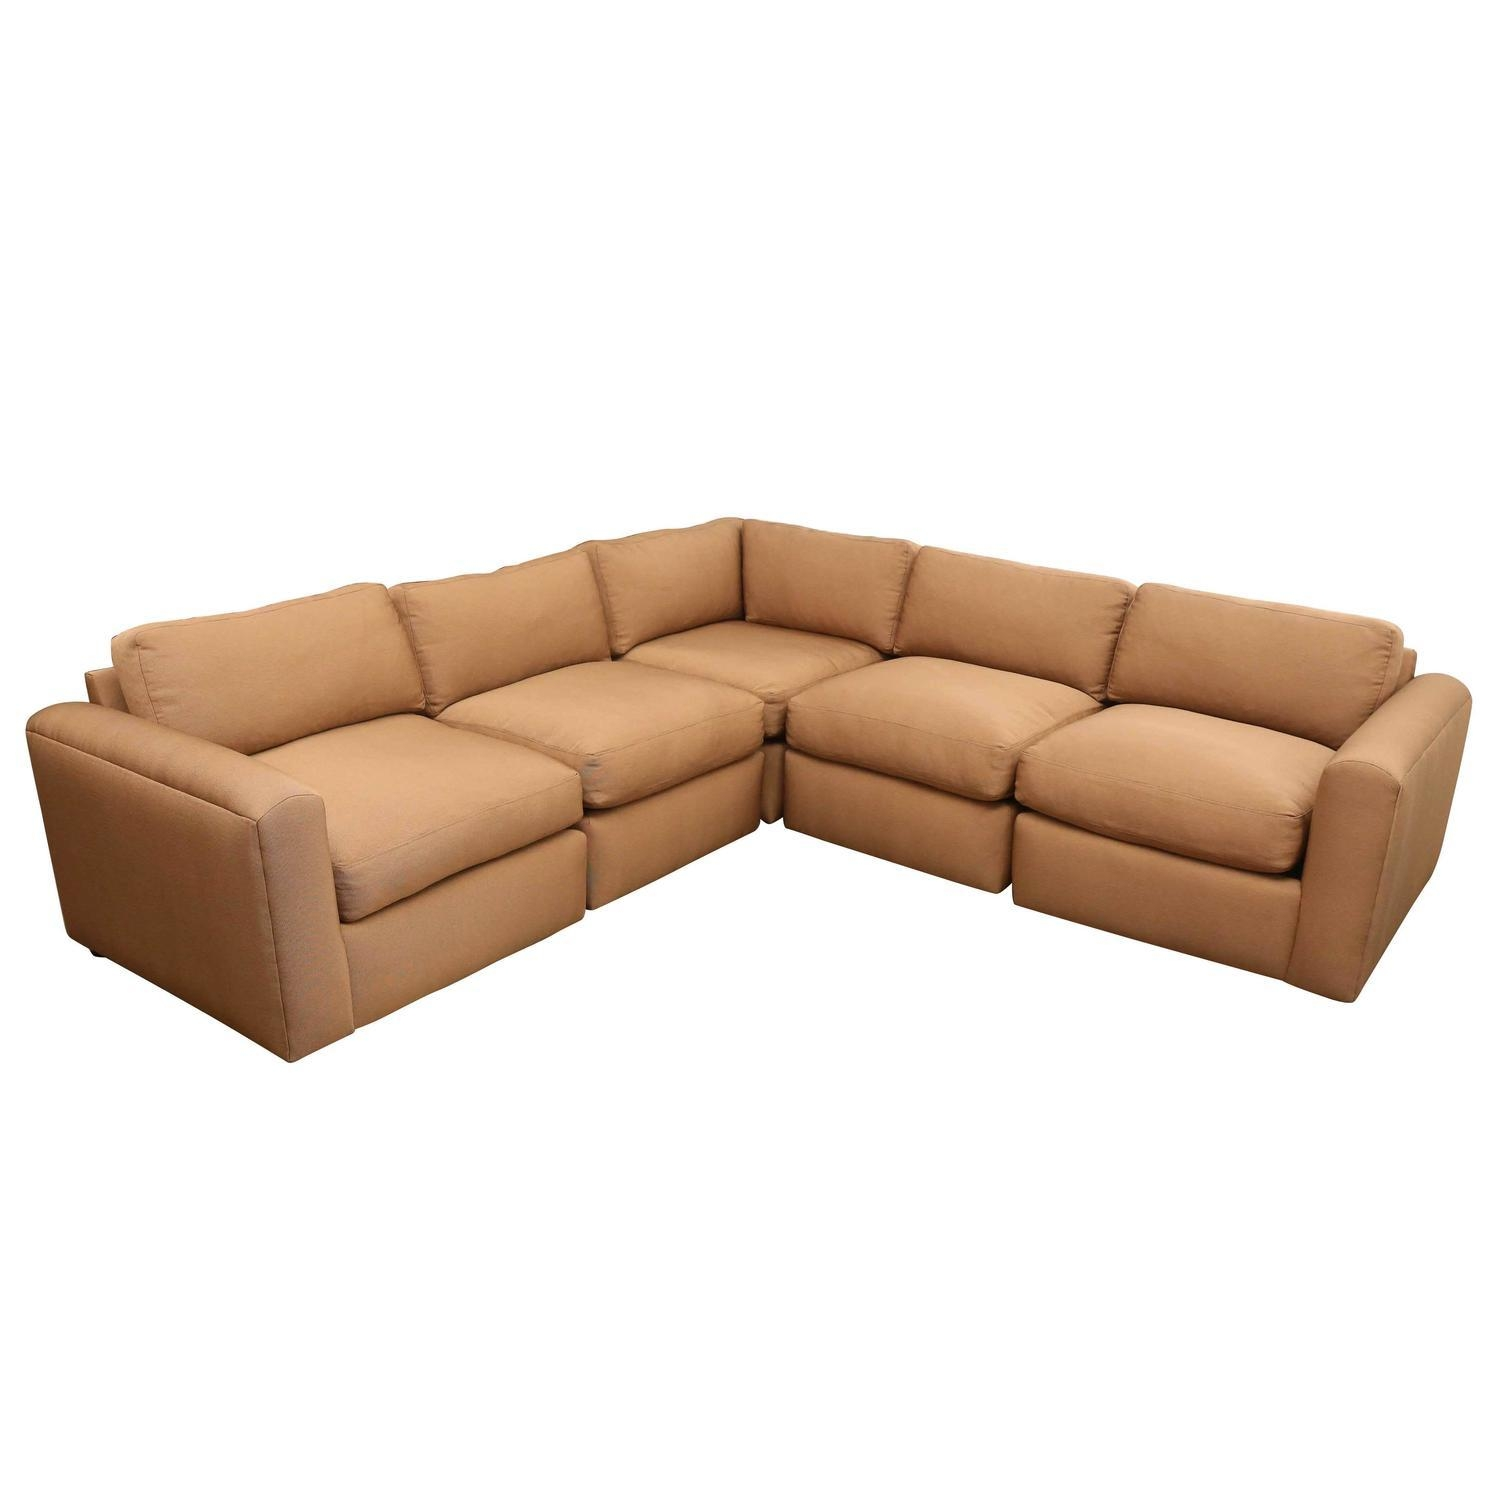 Antique And Vintage Sectional Sofas – 416 For Sale At 1Stdibs With Mid Century Modern Sectional (Image 1 of 20)